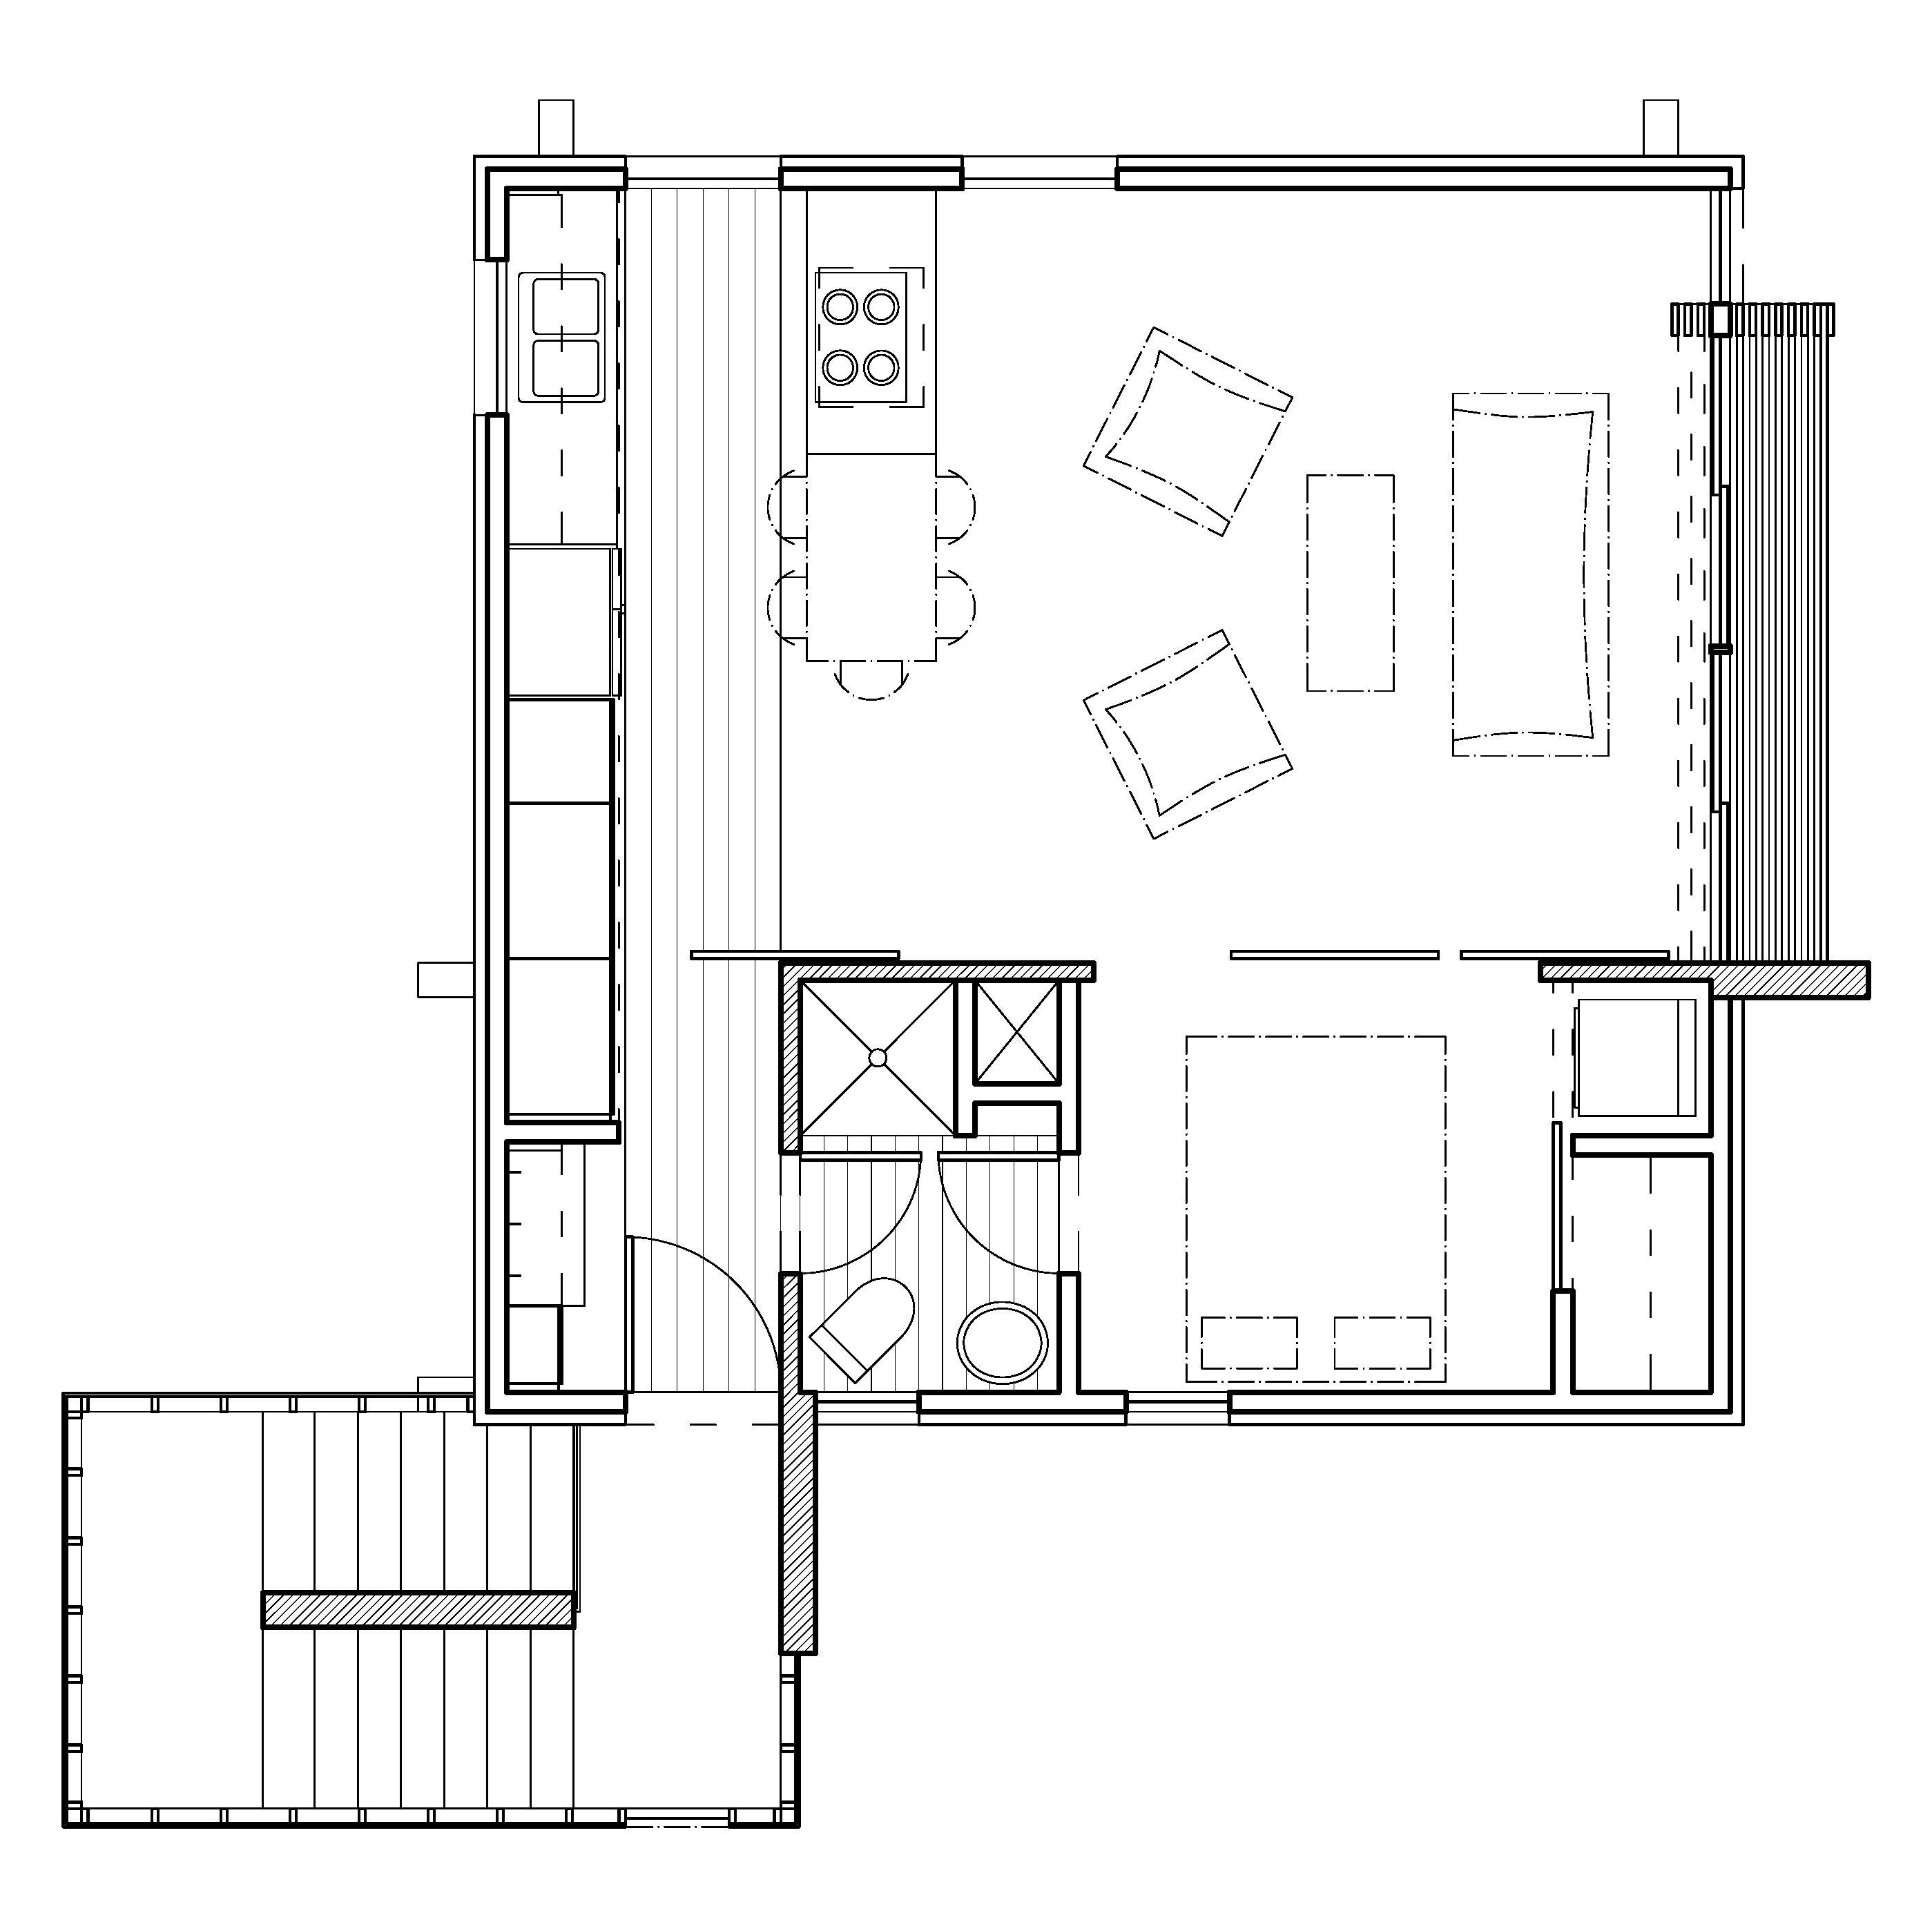 Home Design Floor Plan Modern House Plans Contemporary Home Designs Floor Plan 04